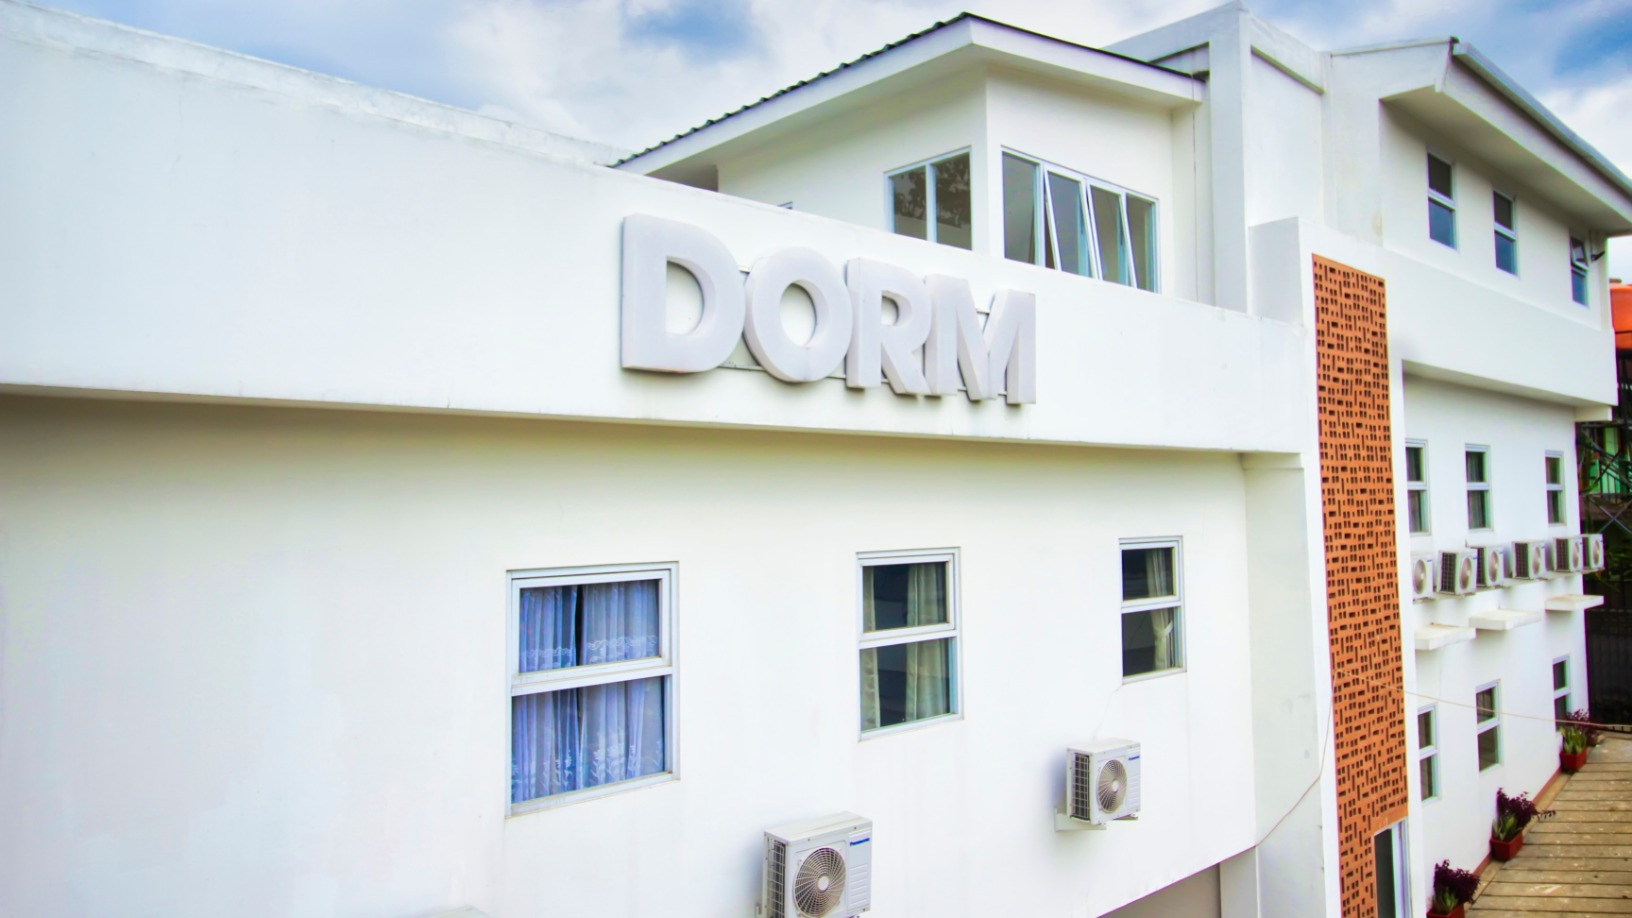 DORM: New-generation housing for Indonesia's tech-savvy, community-driven students